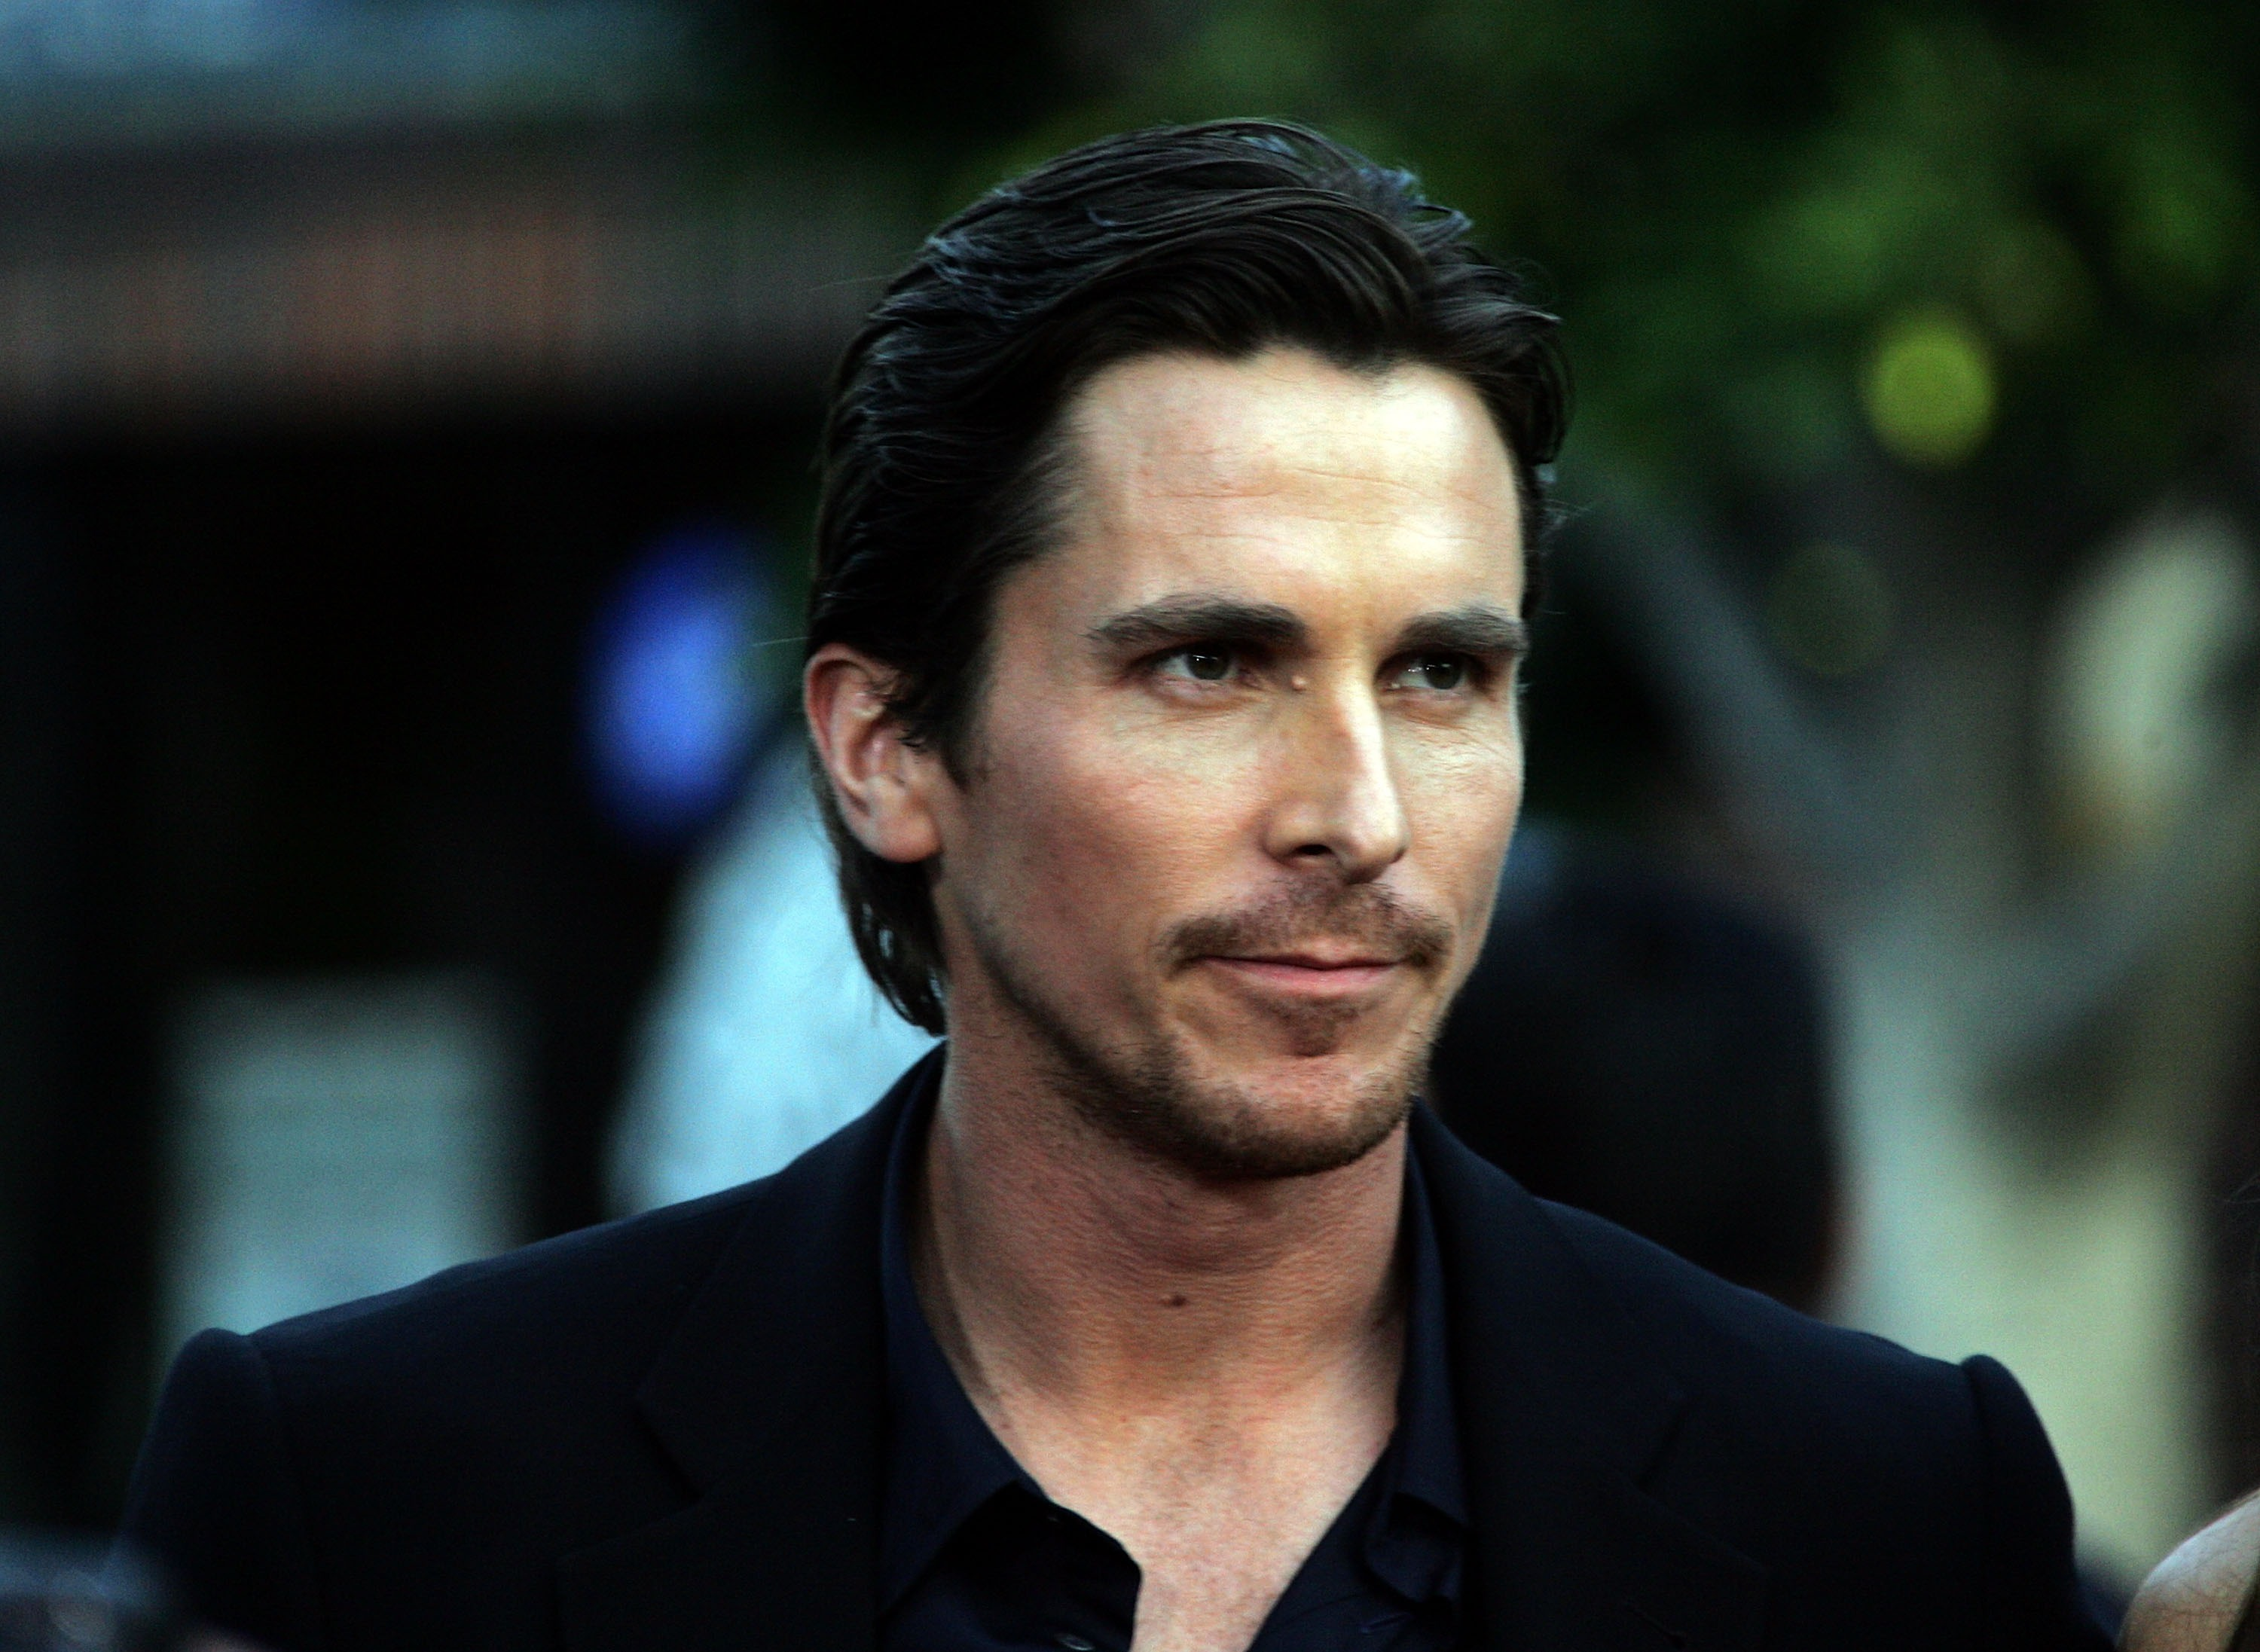 Christian Bale Facts